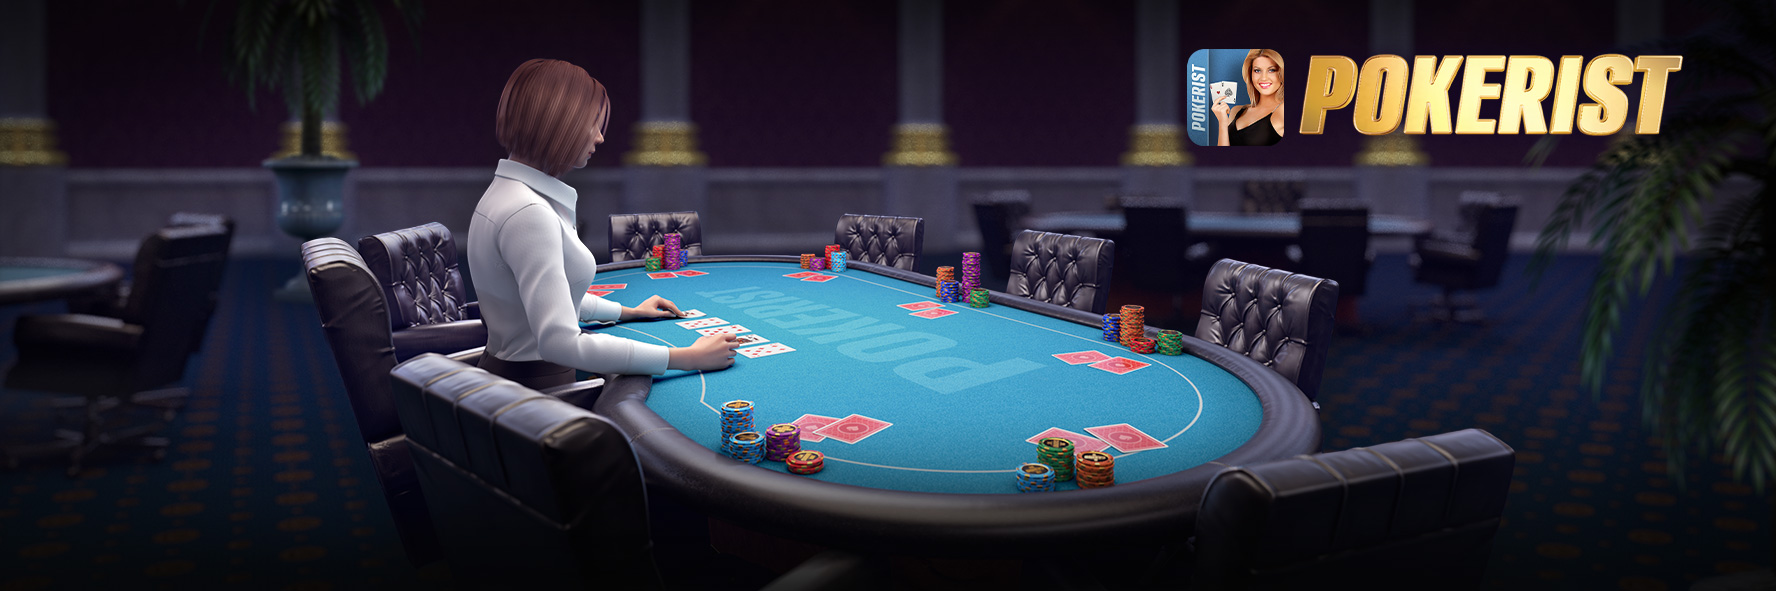 Texas Holdem Poker - Pokerist. Free online casino. cover